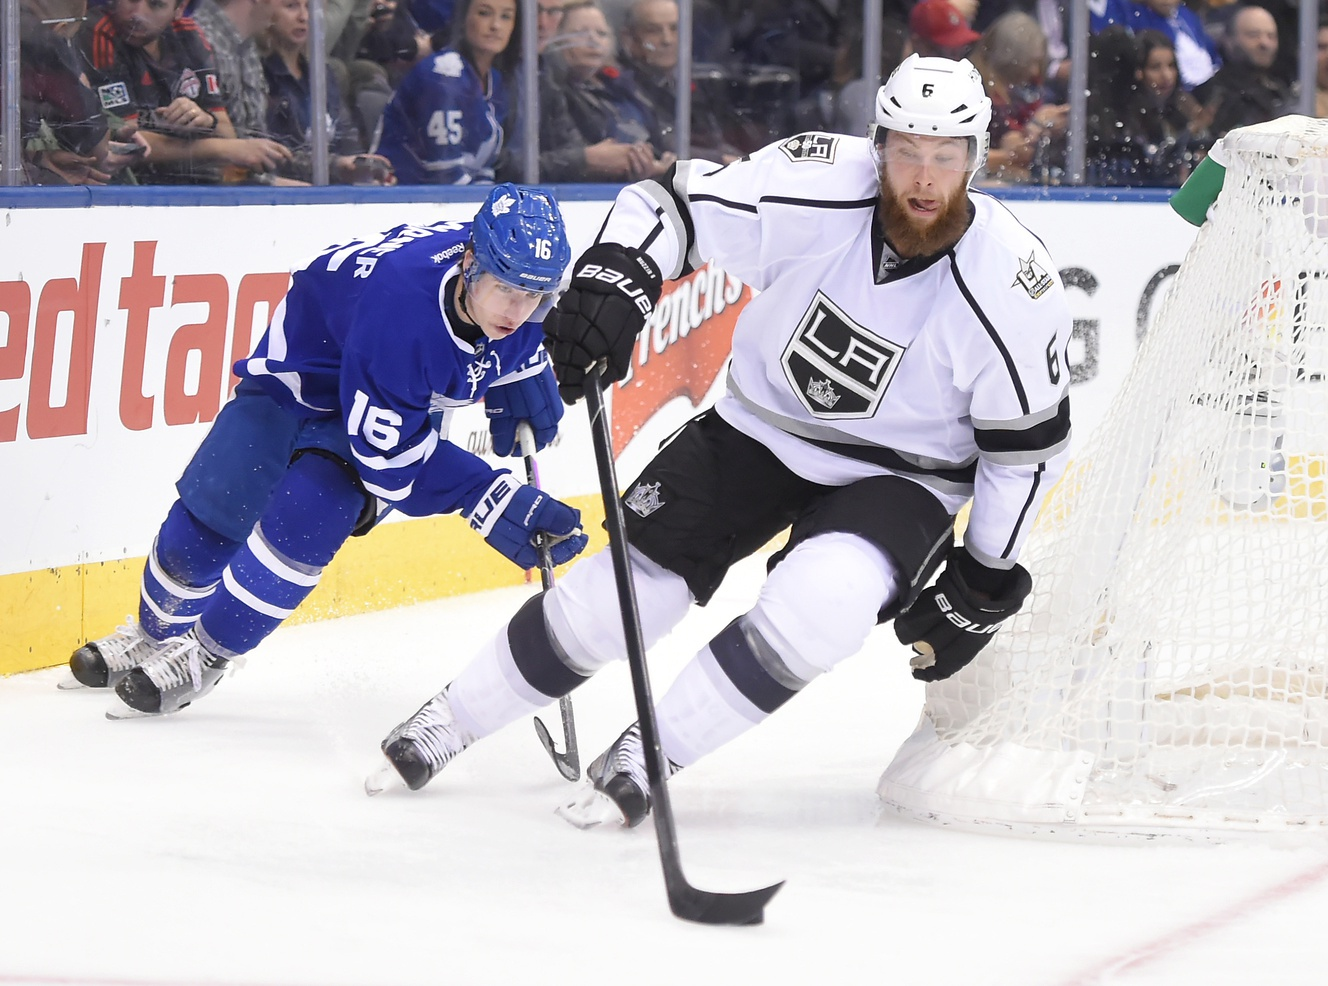 Maple Leafs acquire defenseman Muzzin in trade with Kings